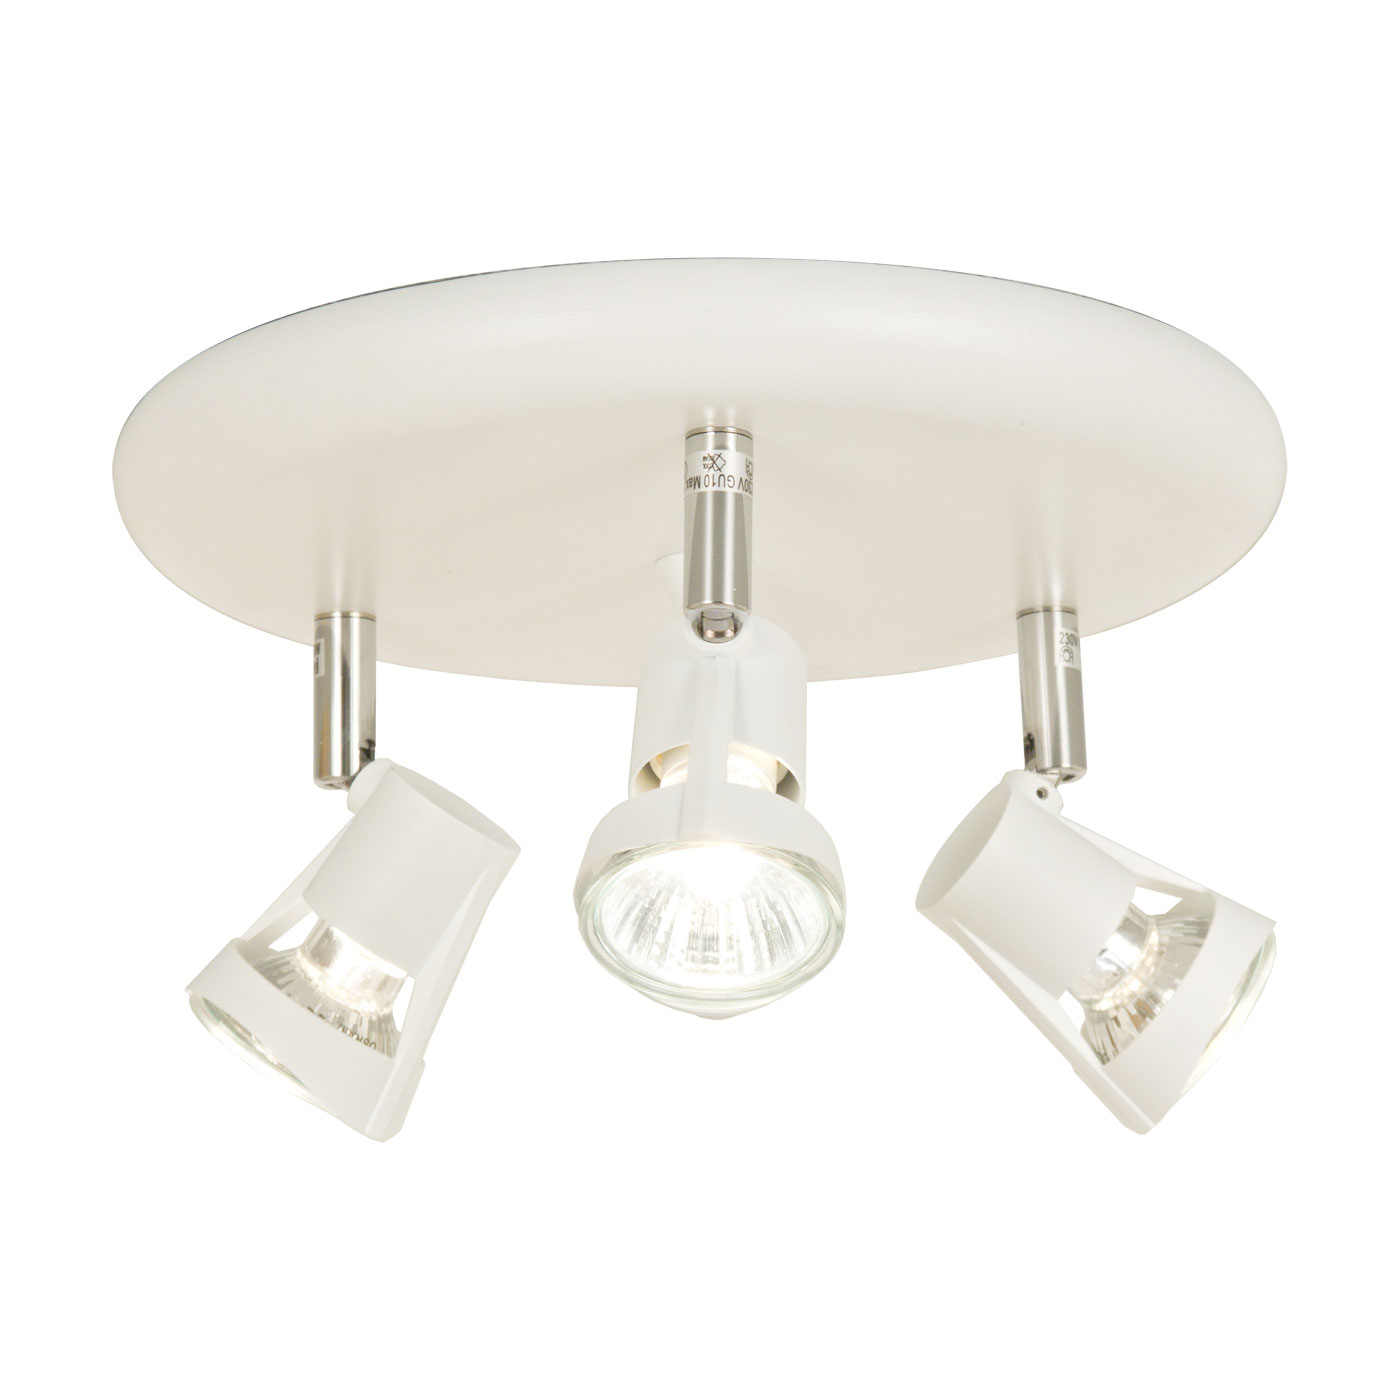 Scan Lamps Pixy Rund Spotlights